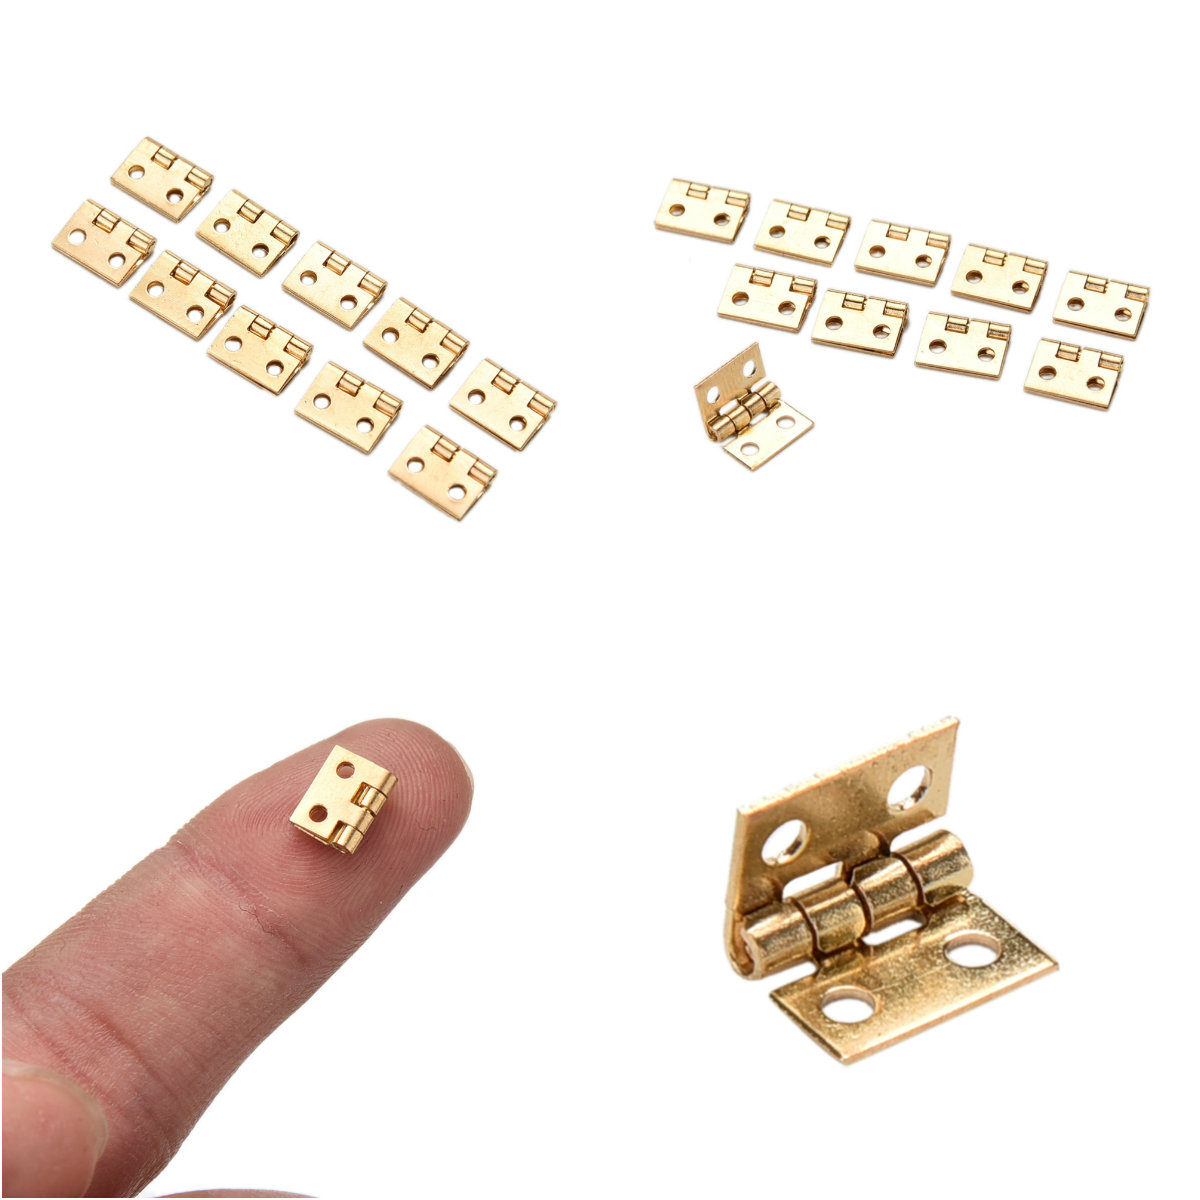 10 Pcs/lot 10*8MM Mini Cabinet Drawer Hinge Butt Hinge Copper Gold 4 Small Small Hinge Hole Hand Tools Hardware